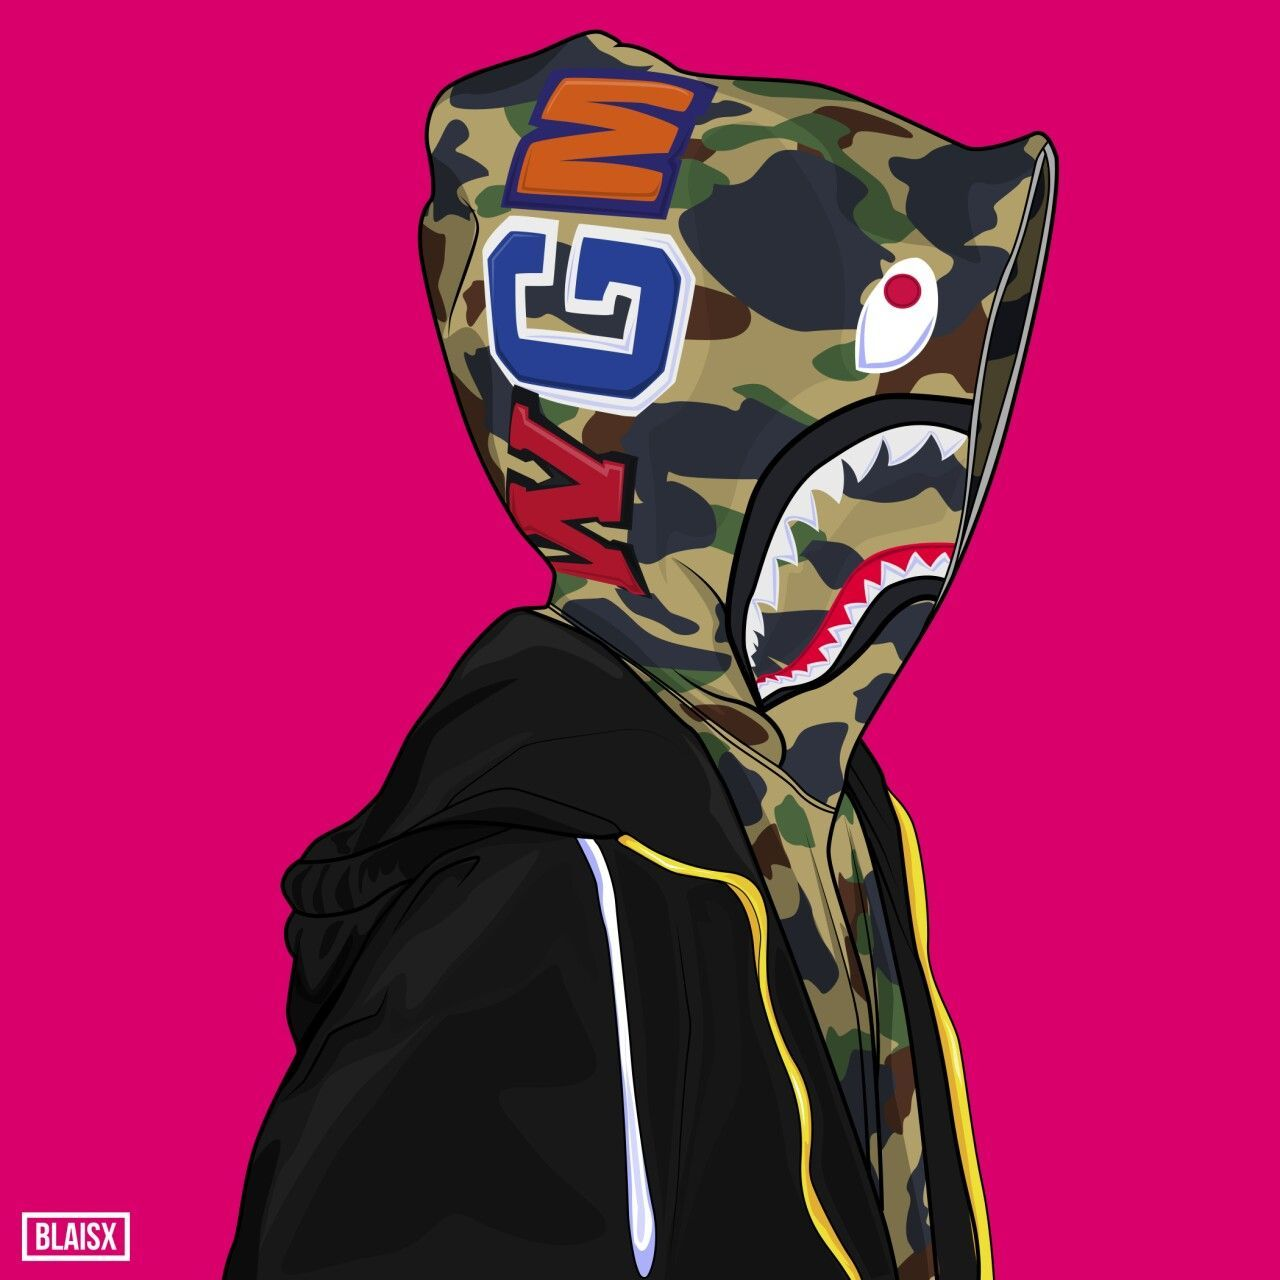 Bape Supreme Dope Cartoon Wallpapers Top Free Bape Supreme Dope